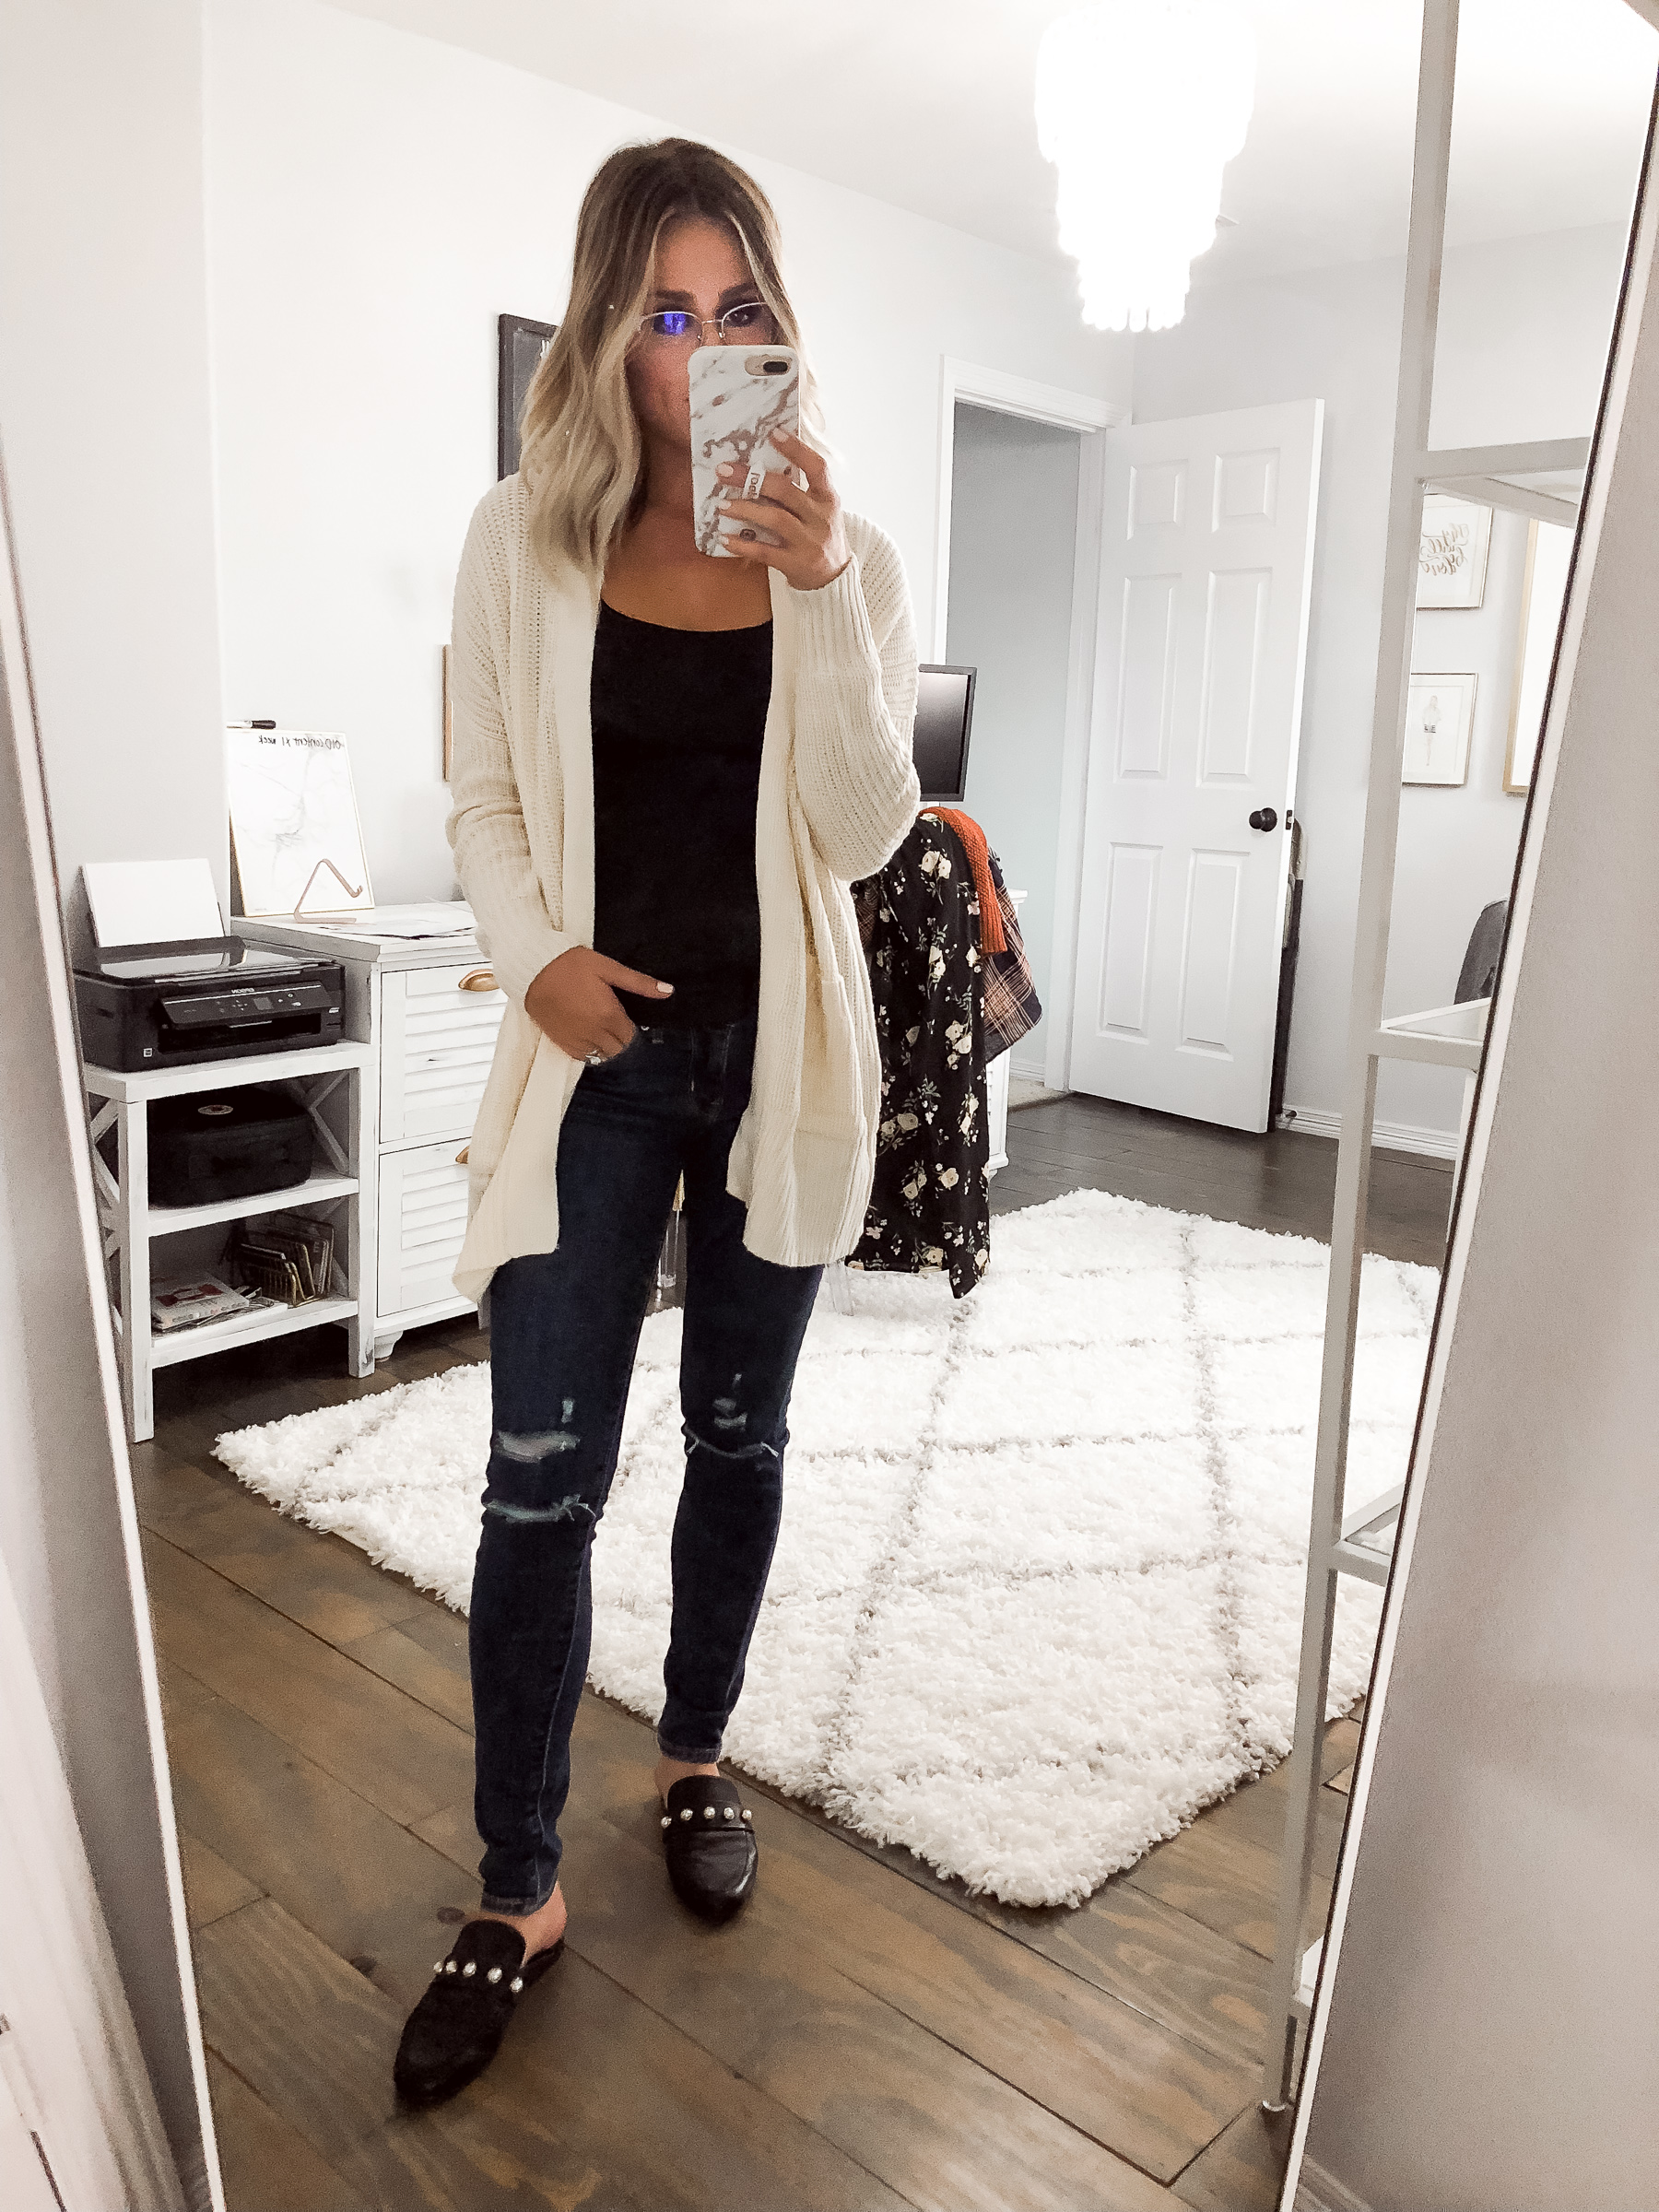 Houston Fashion blogger Uptown with Elly Brown wears a cozy cardigan and black mules